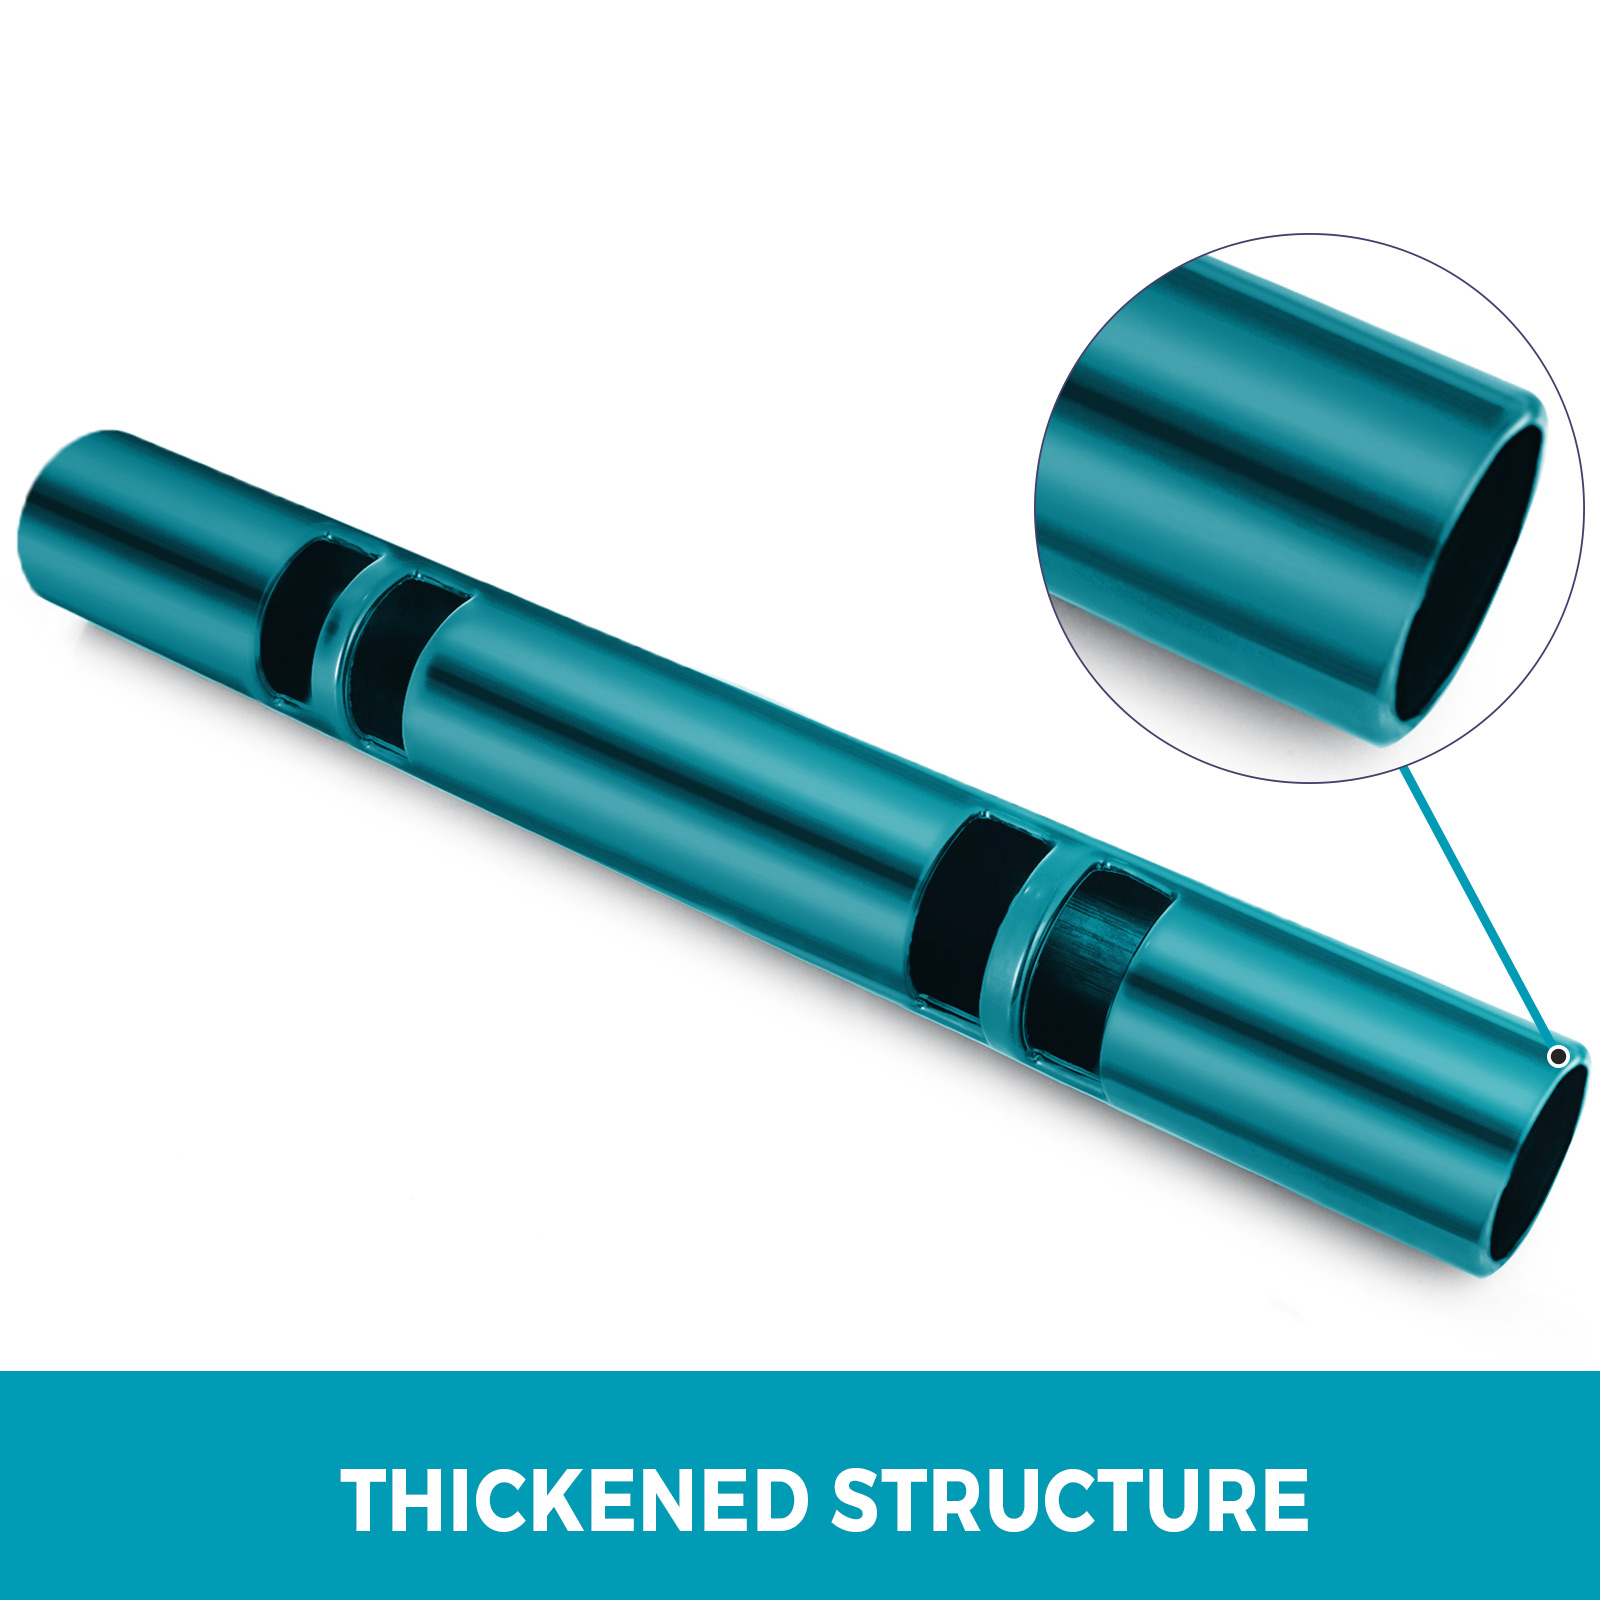 Vipr-Fitpro-Fitness-Tube-Loaded-Movement-Training-weightlifting-4-6-8-10-12-Kg thumbnail 171